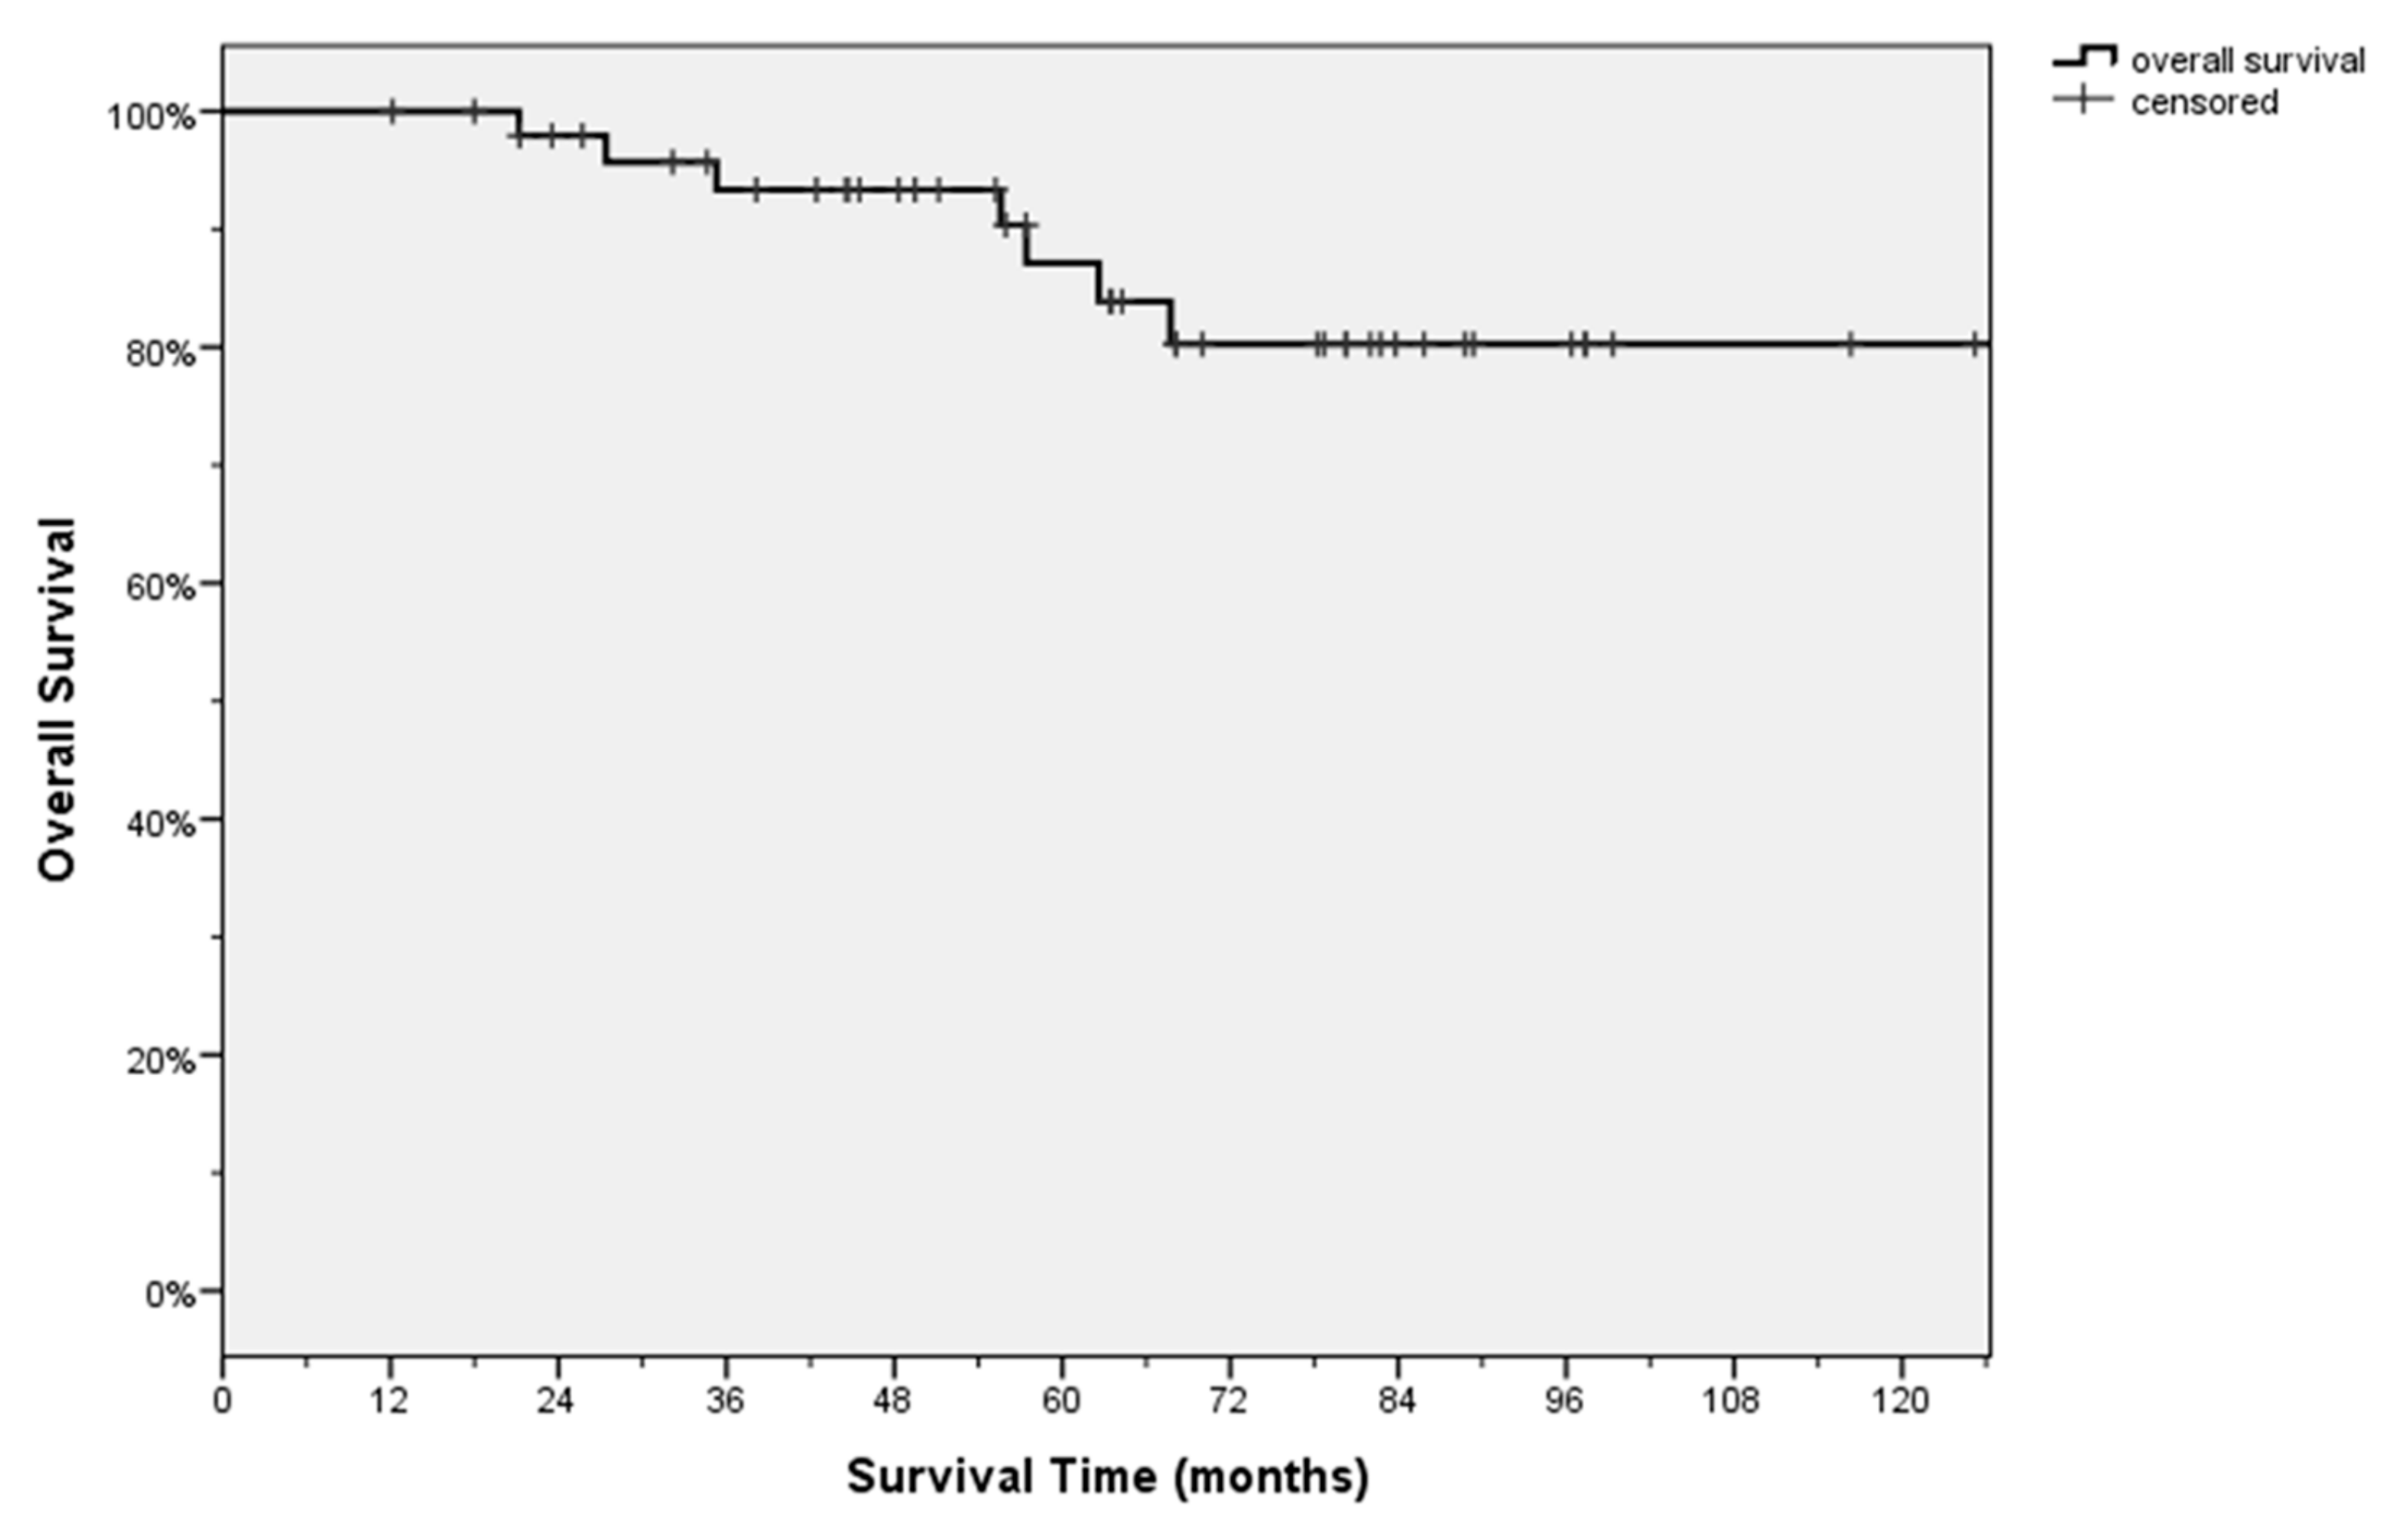 Cancers | Free Full-Text | Potential Prognostic Role of 18F-FDG PET